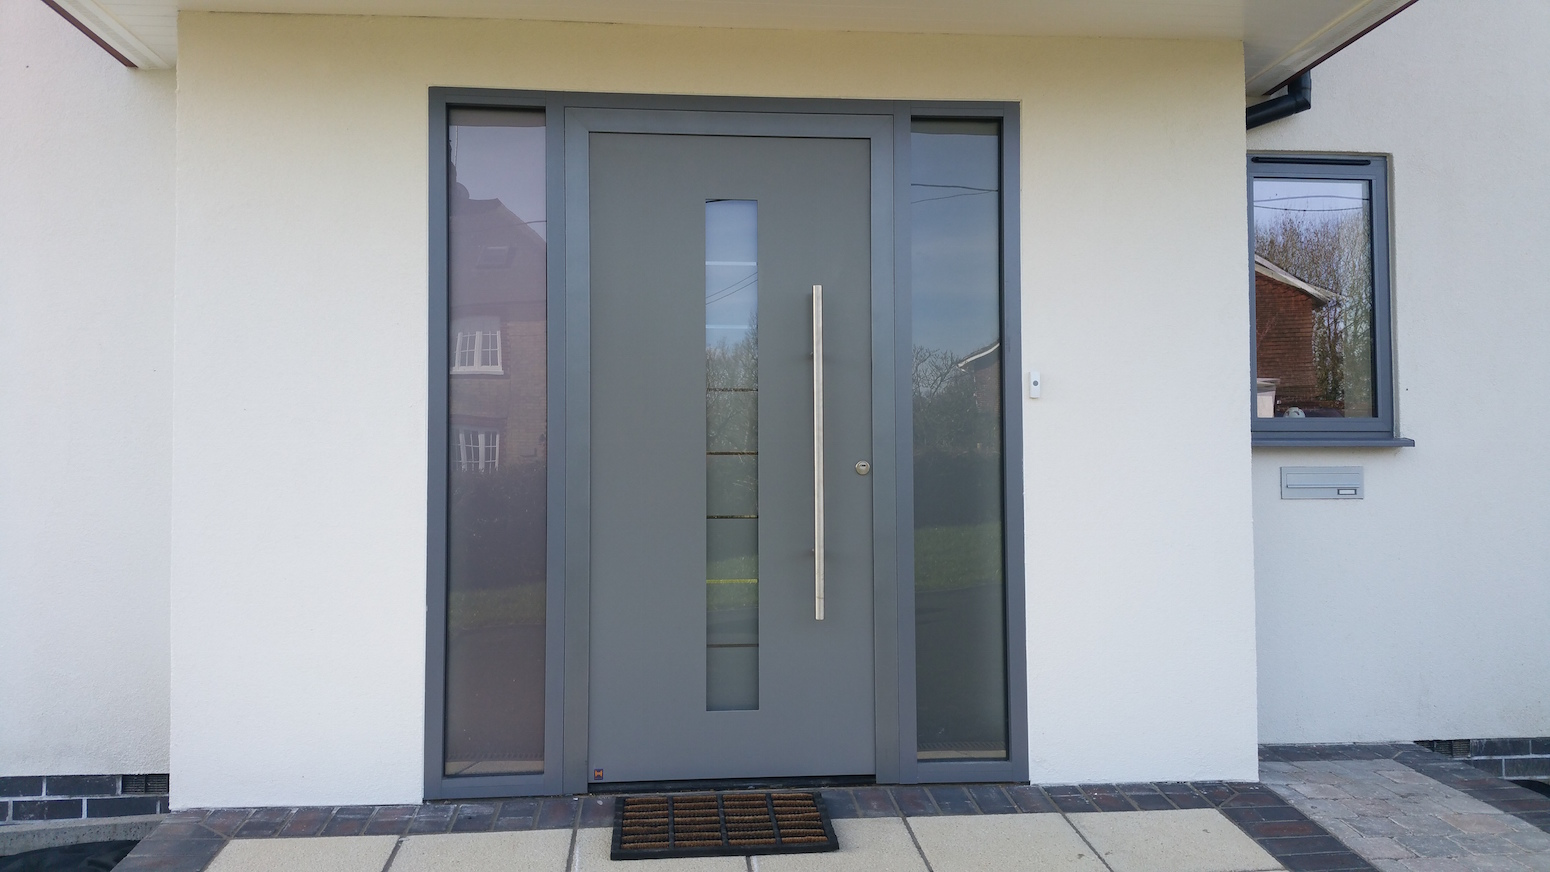 Entrance Doors Dwl Installers Of Hormann Front Doors In South East Dwl